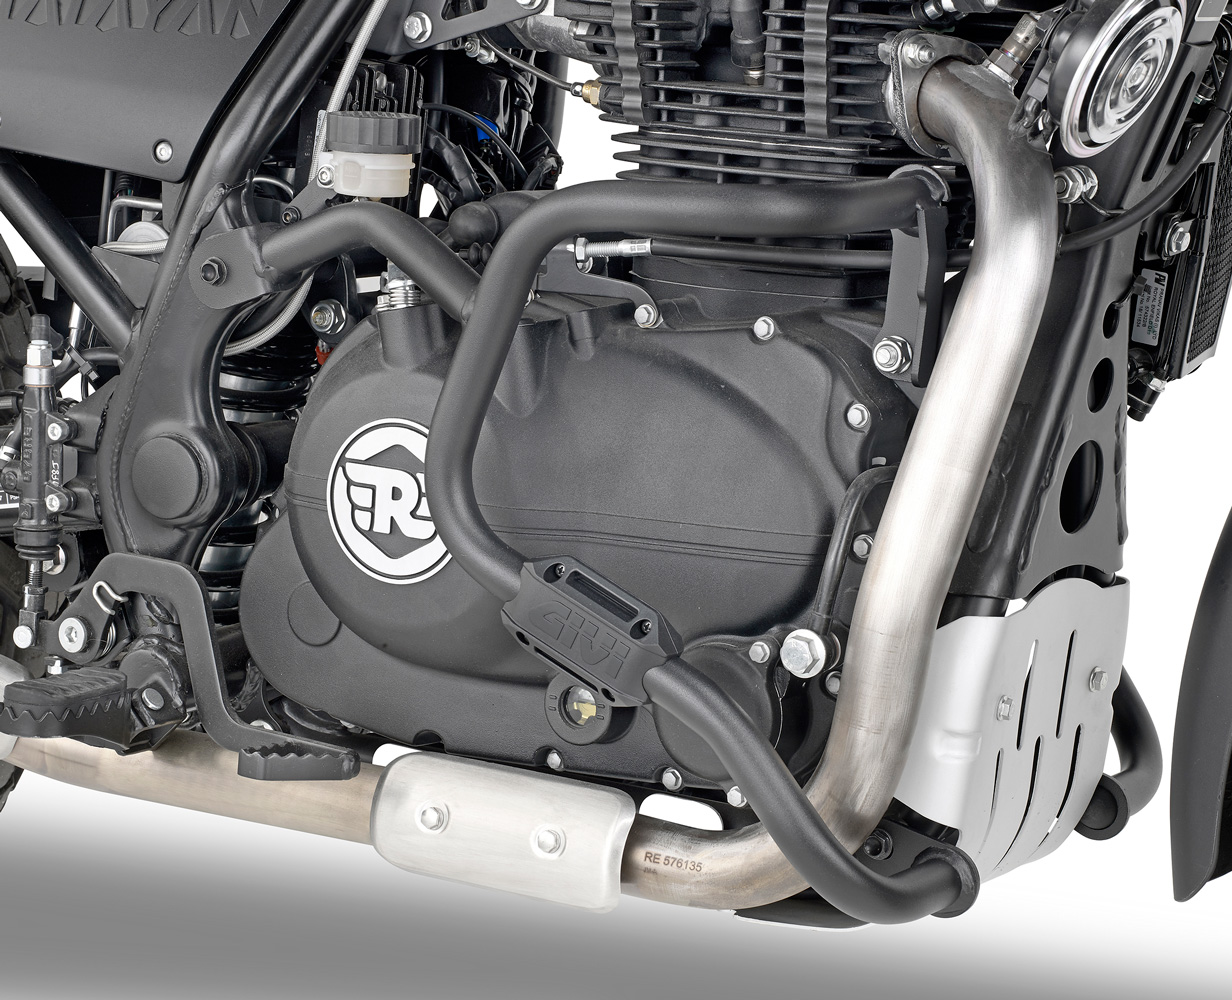 Givi Engine Guard Tn9050 For Royal Enfield Himalayan In Guards